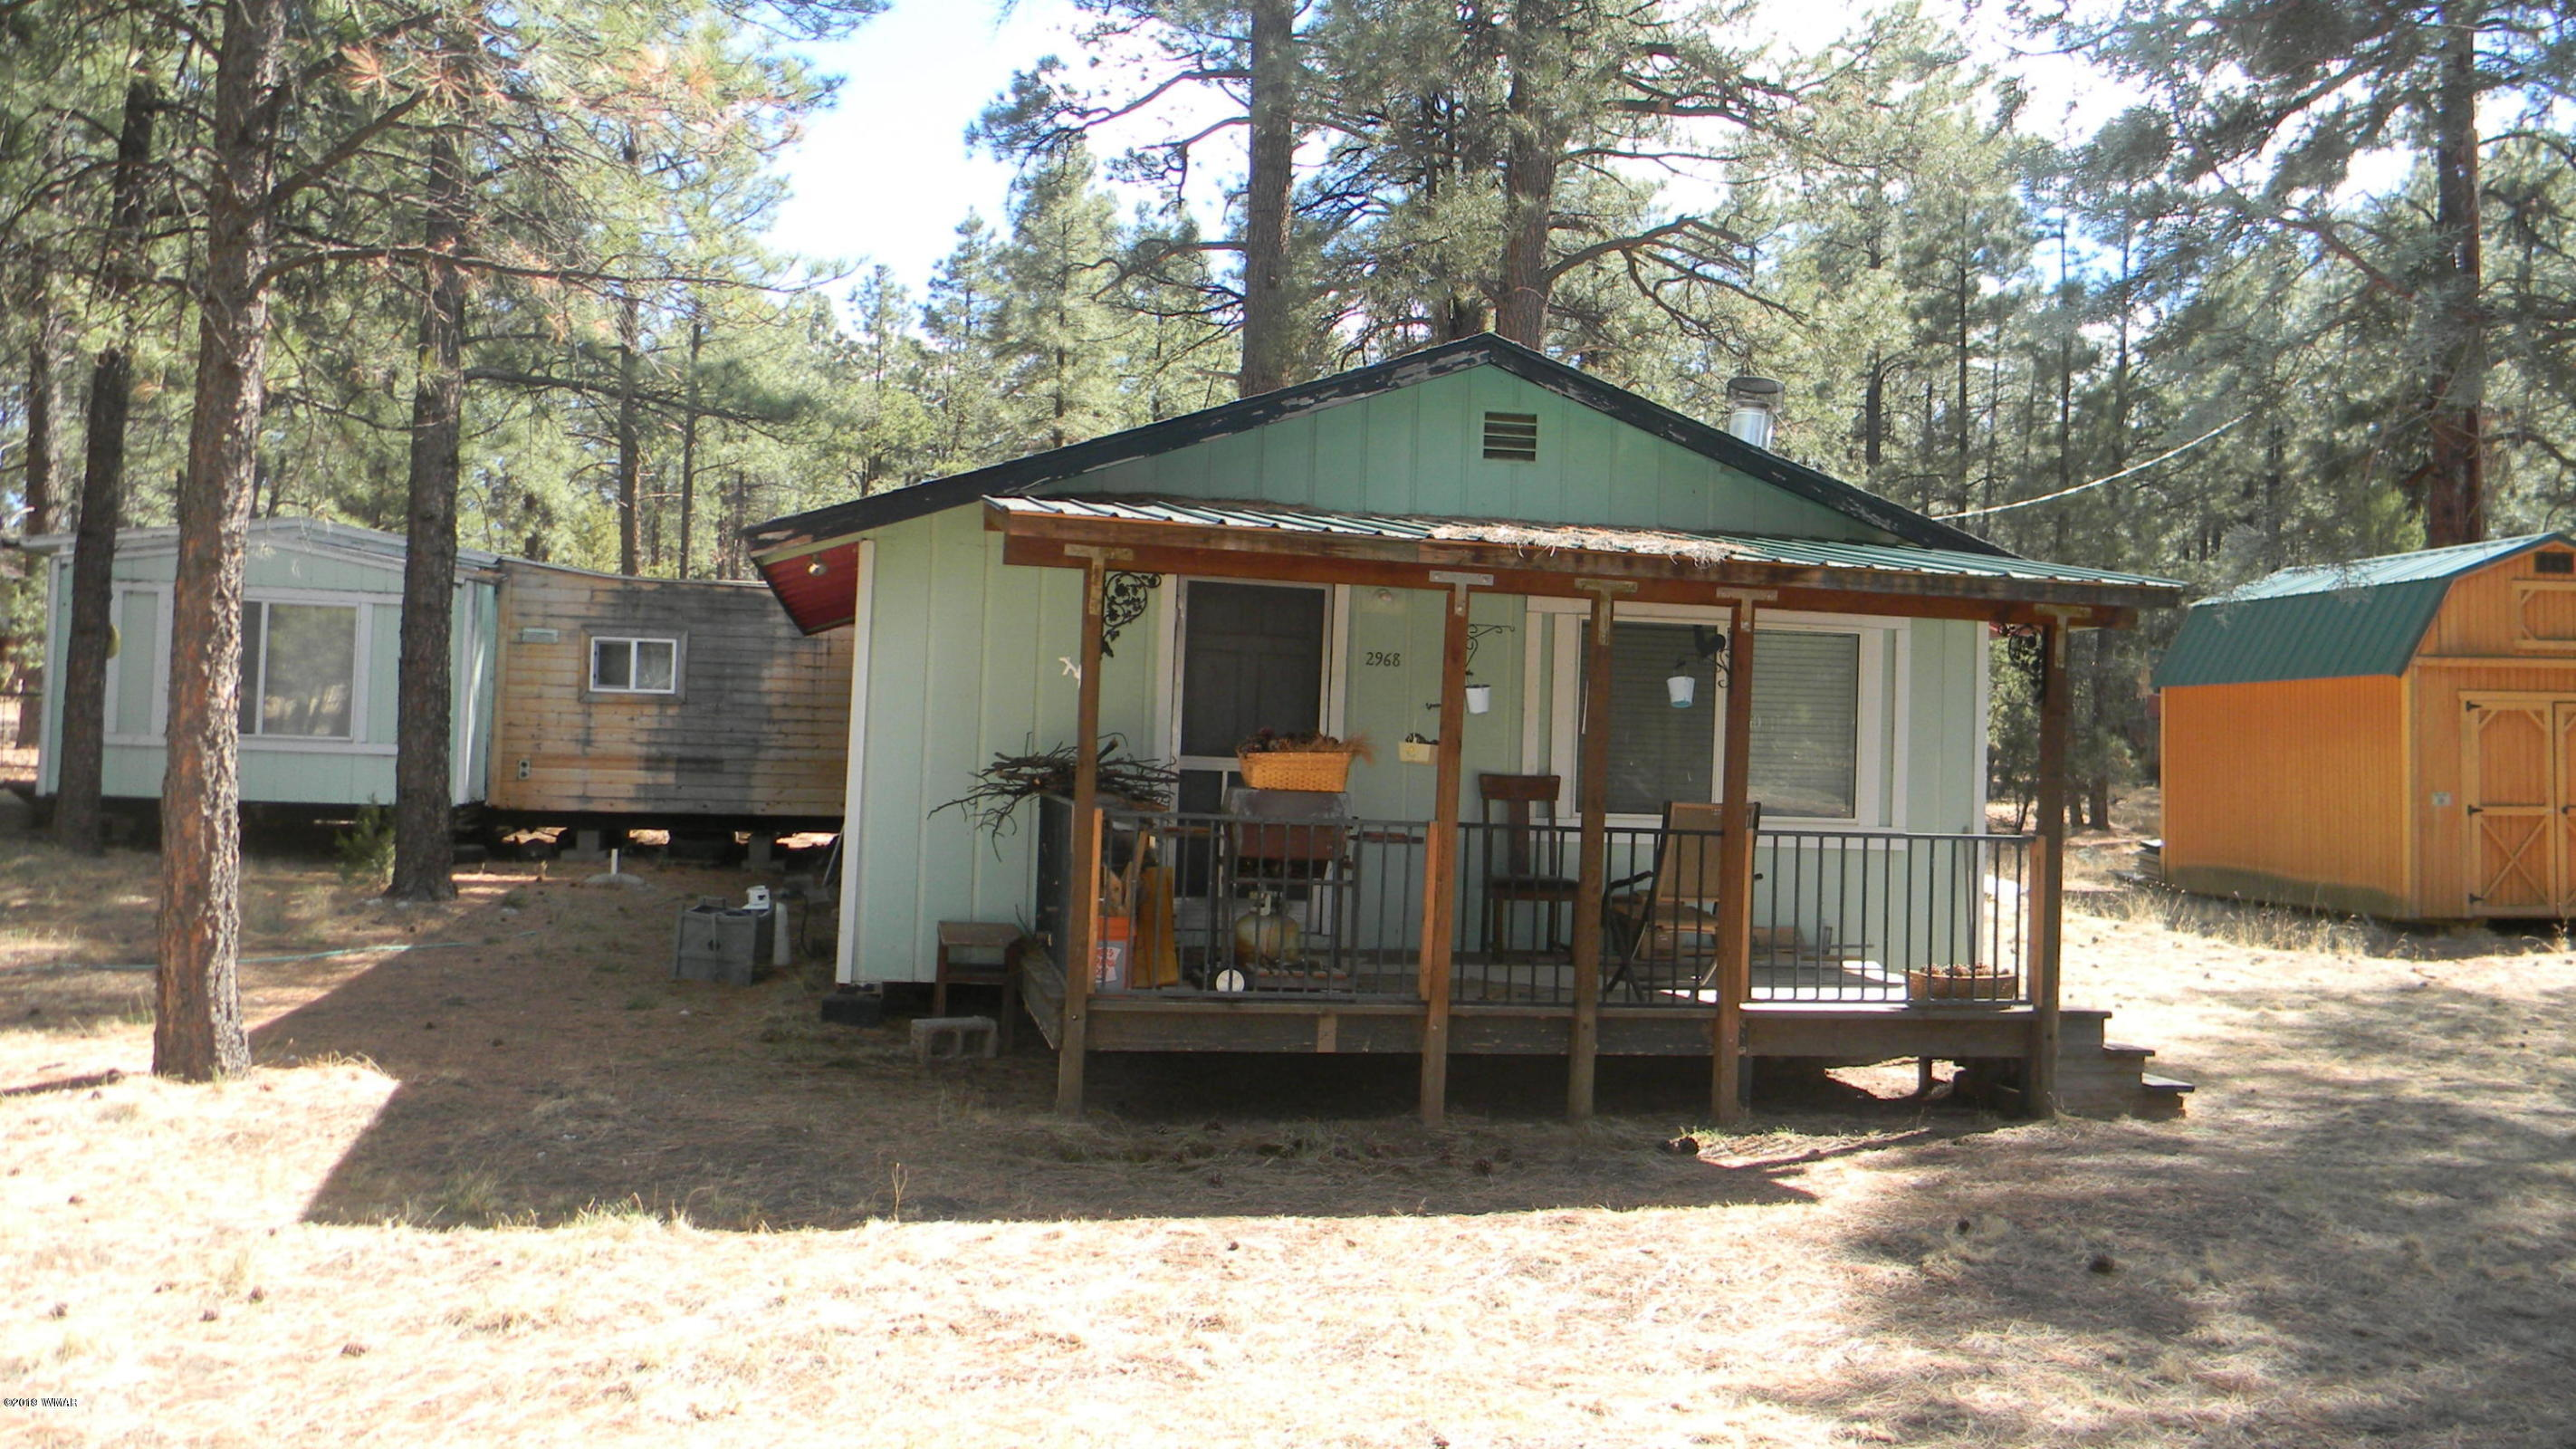 FANTASTIC RENTAL OPPORTUNITY!  Our just extra space for friends and family. Mobile with add on located on .23 acre lot. Unique layout offers 2 separate living quarters. Has lots of tall pines, in a quiet neighborhood with very little traffic. On a paved, county-maintained road, just minutes away from stores, restaurants, and national forest. Recently re-plumbed throughout with Pex. Owners' opinion of square footage differs from county records, buyer to verify.